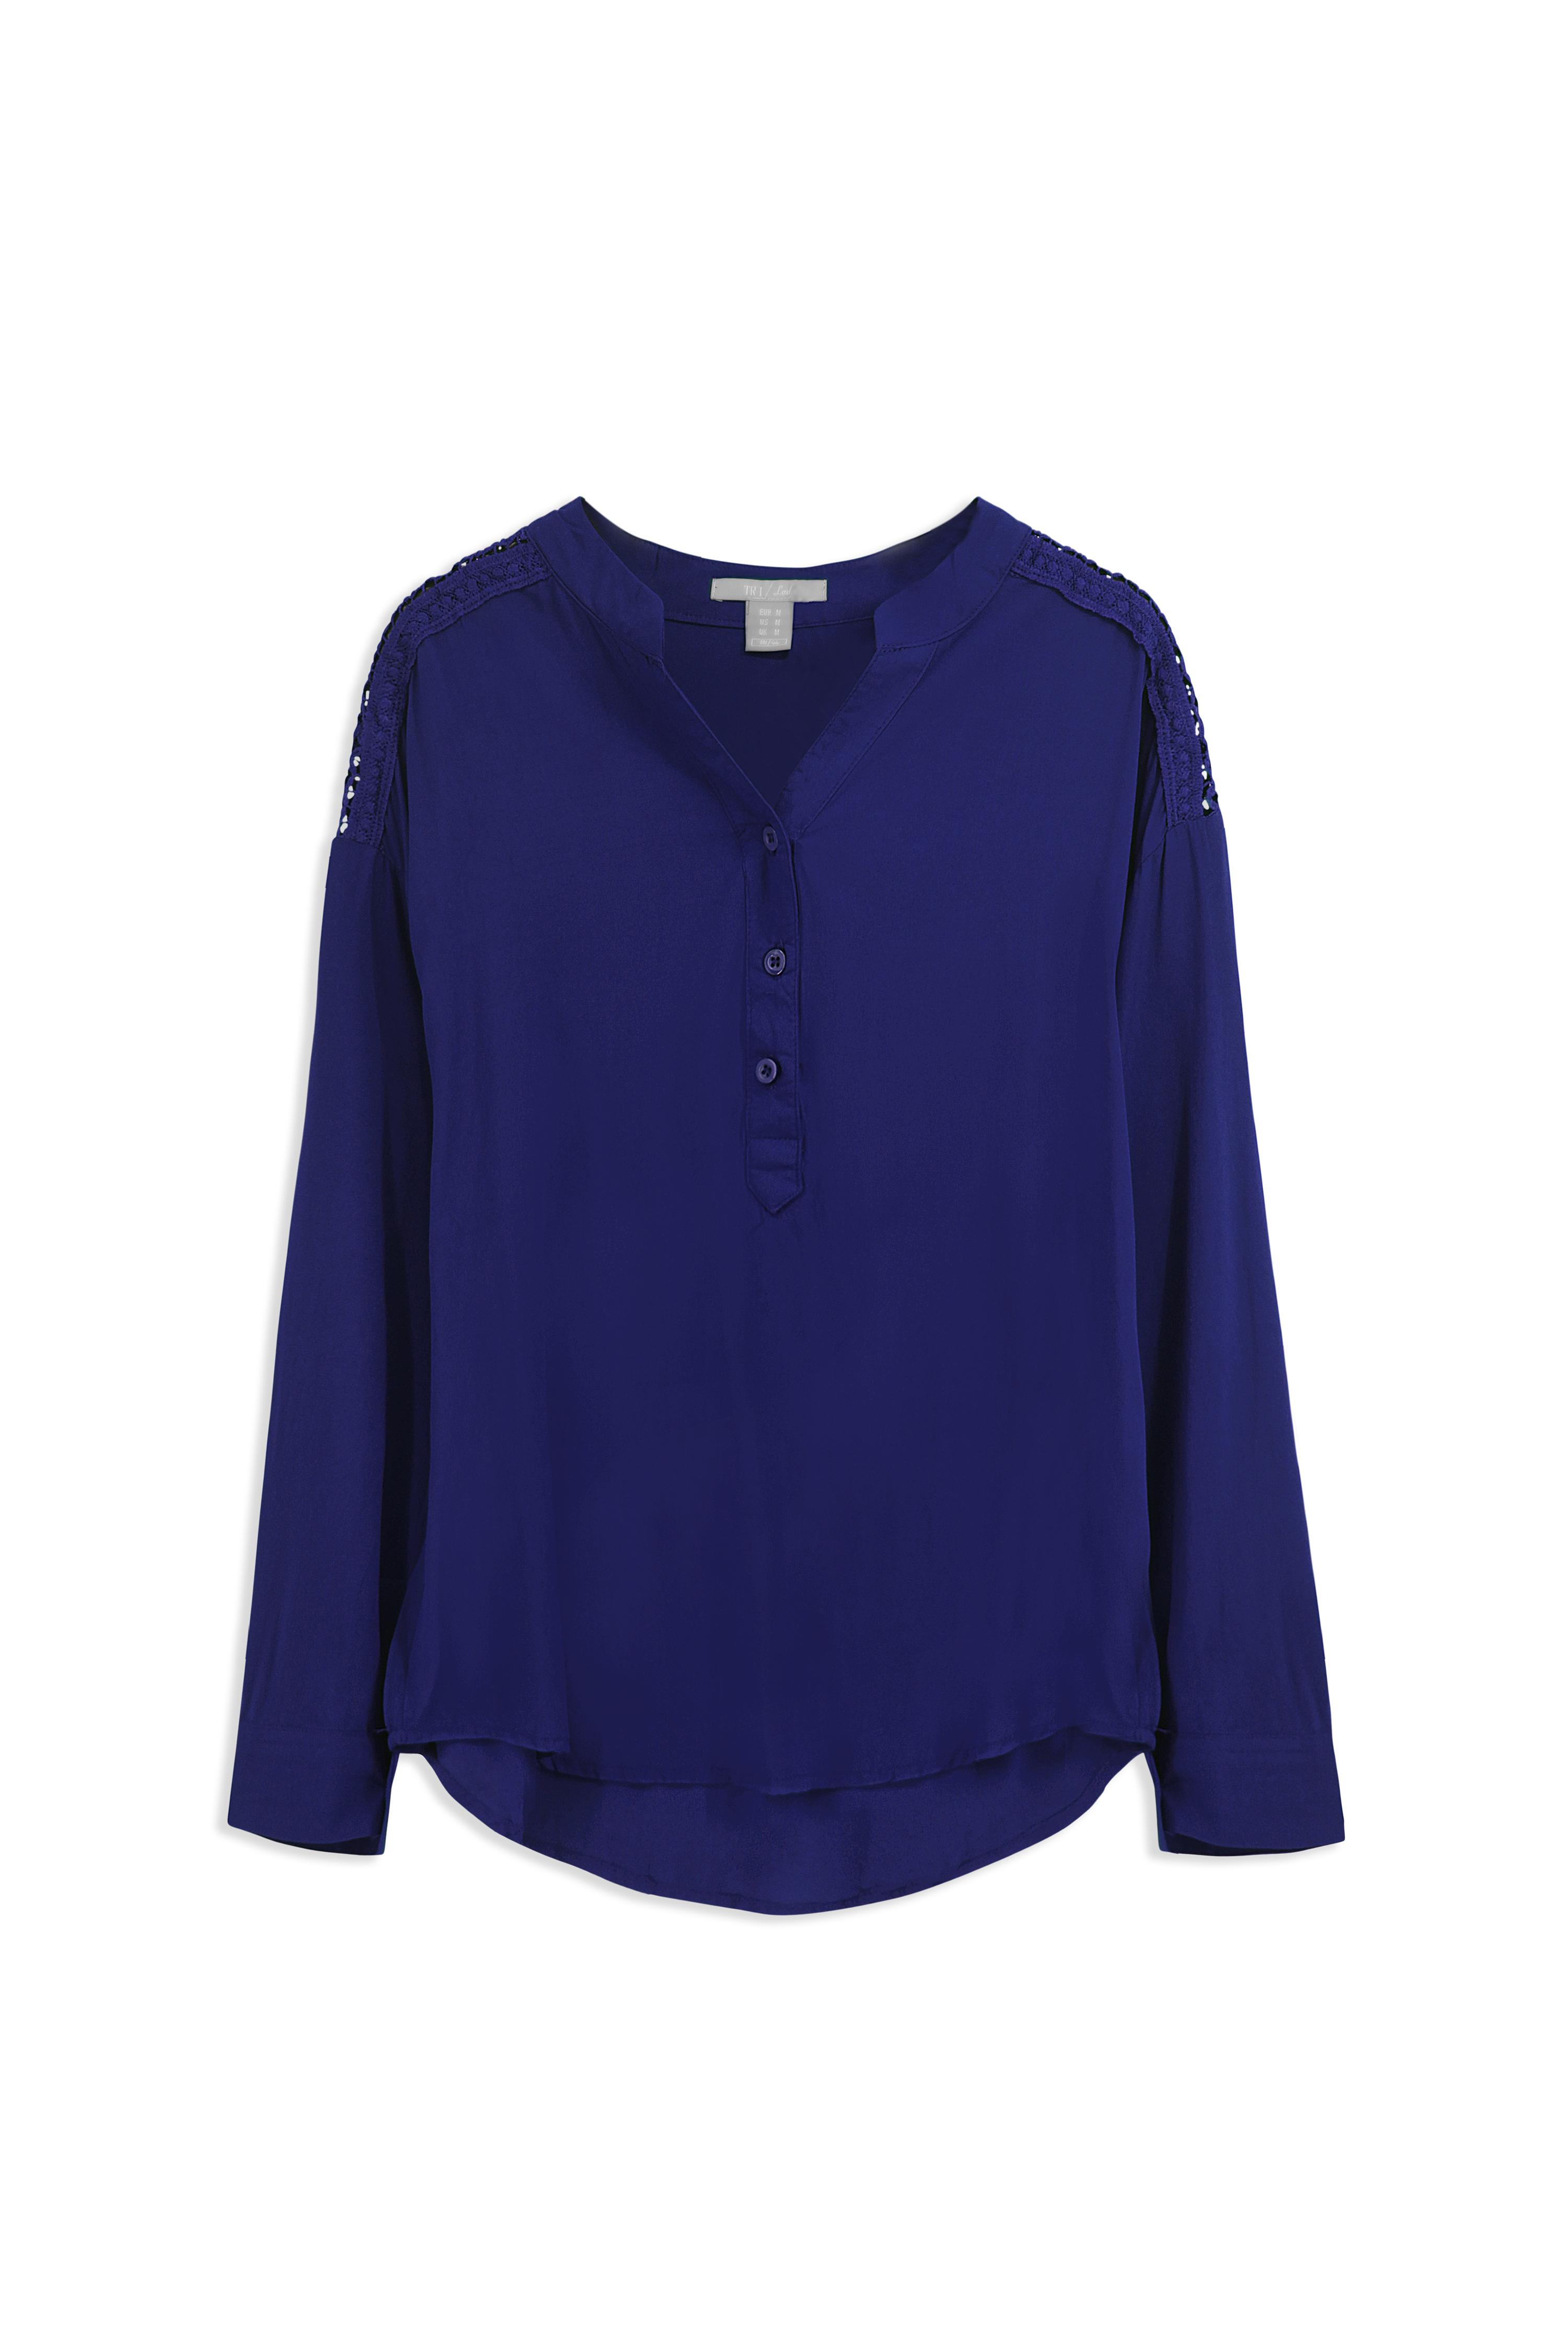 Lady Blouse Cotton (LBC-06002)